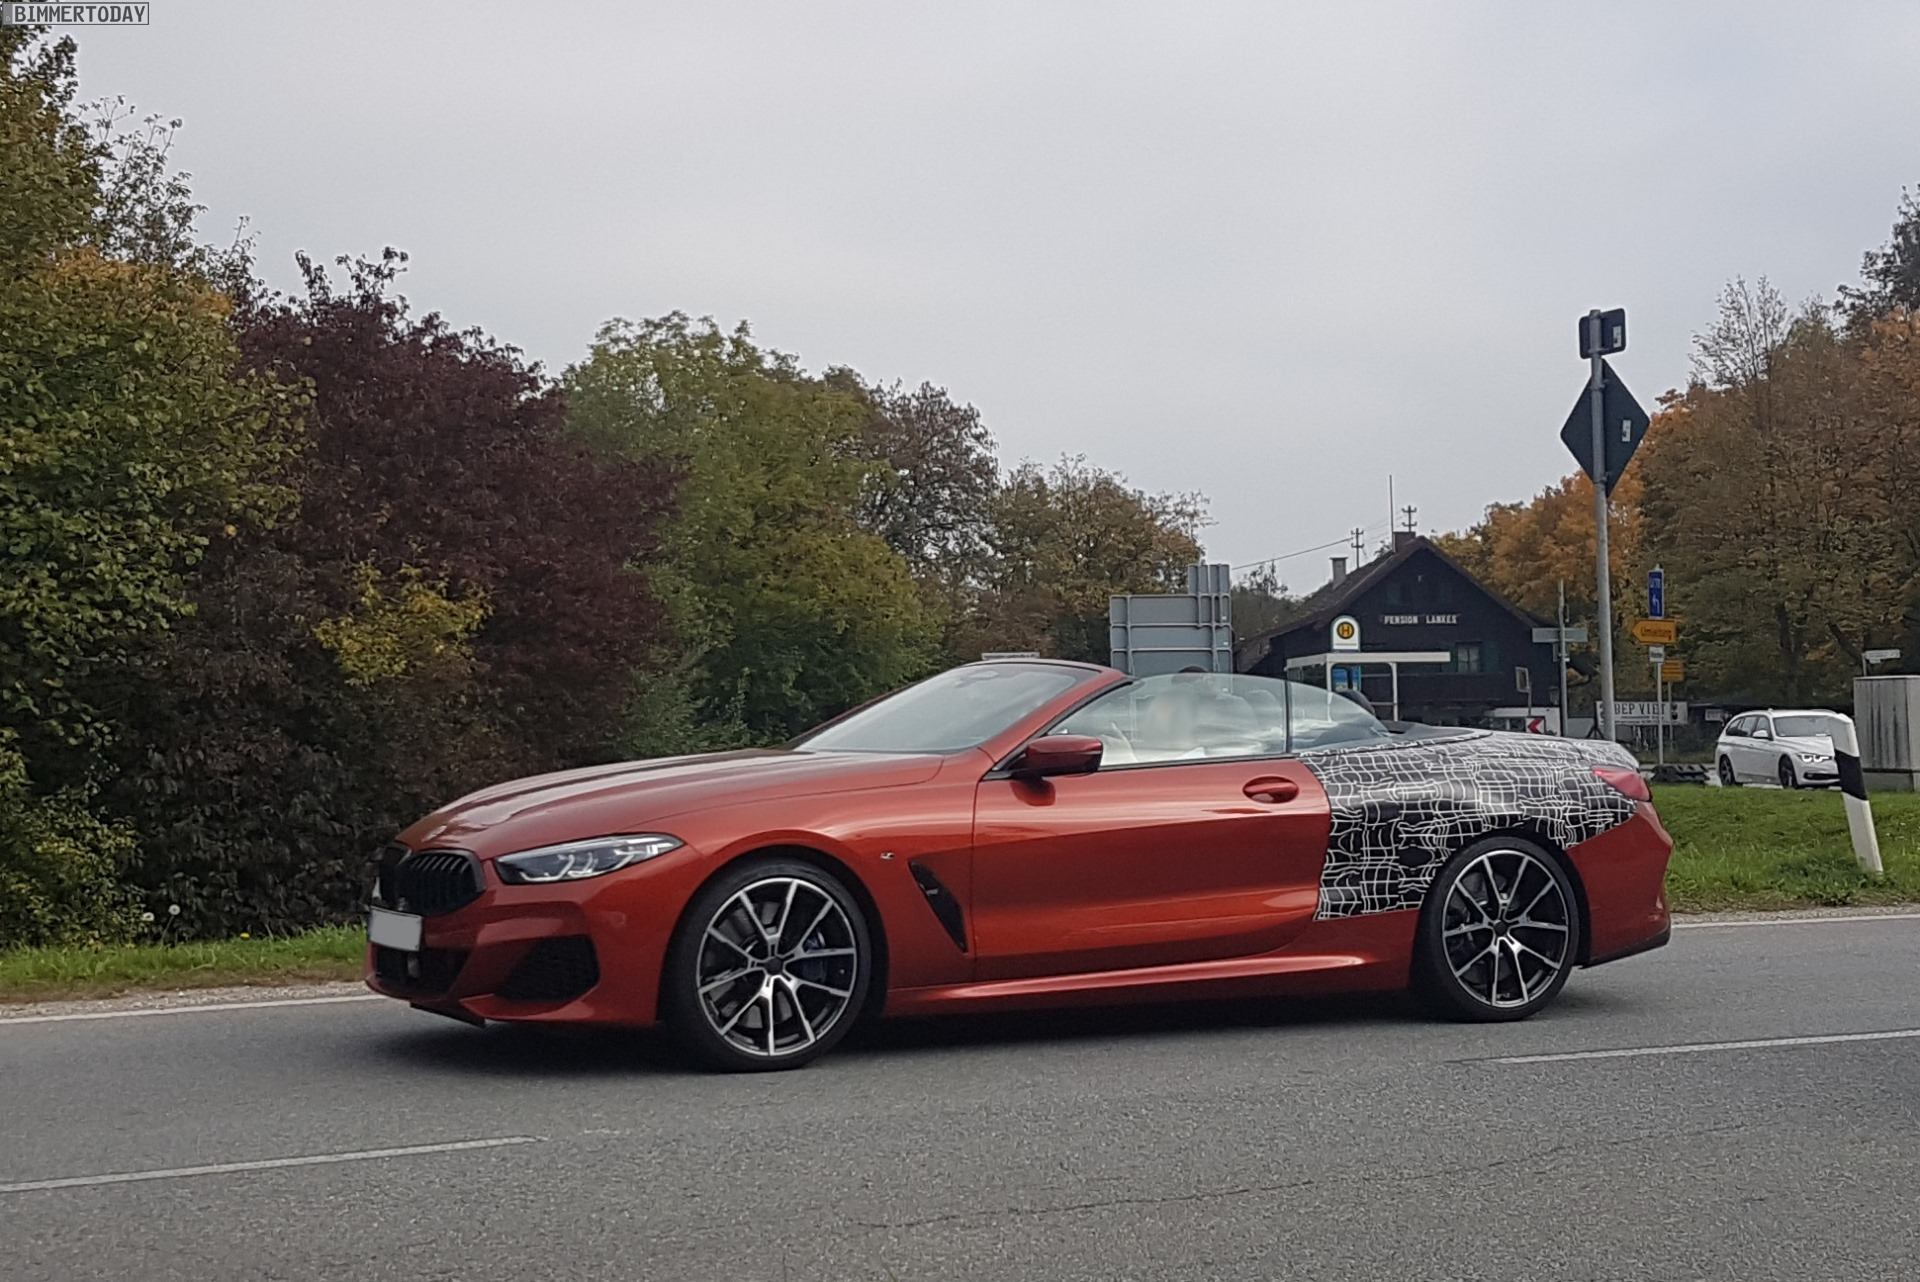 bmw 8er cabrio 2019 in sunset orange der sonne entgegen. Black Bedroom Furniture Sets. Home Design Ideas